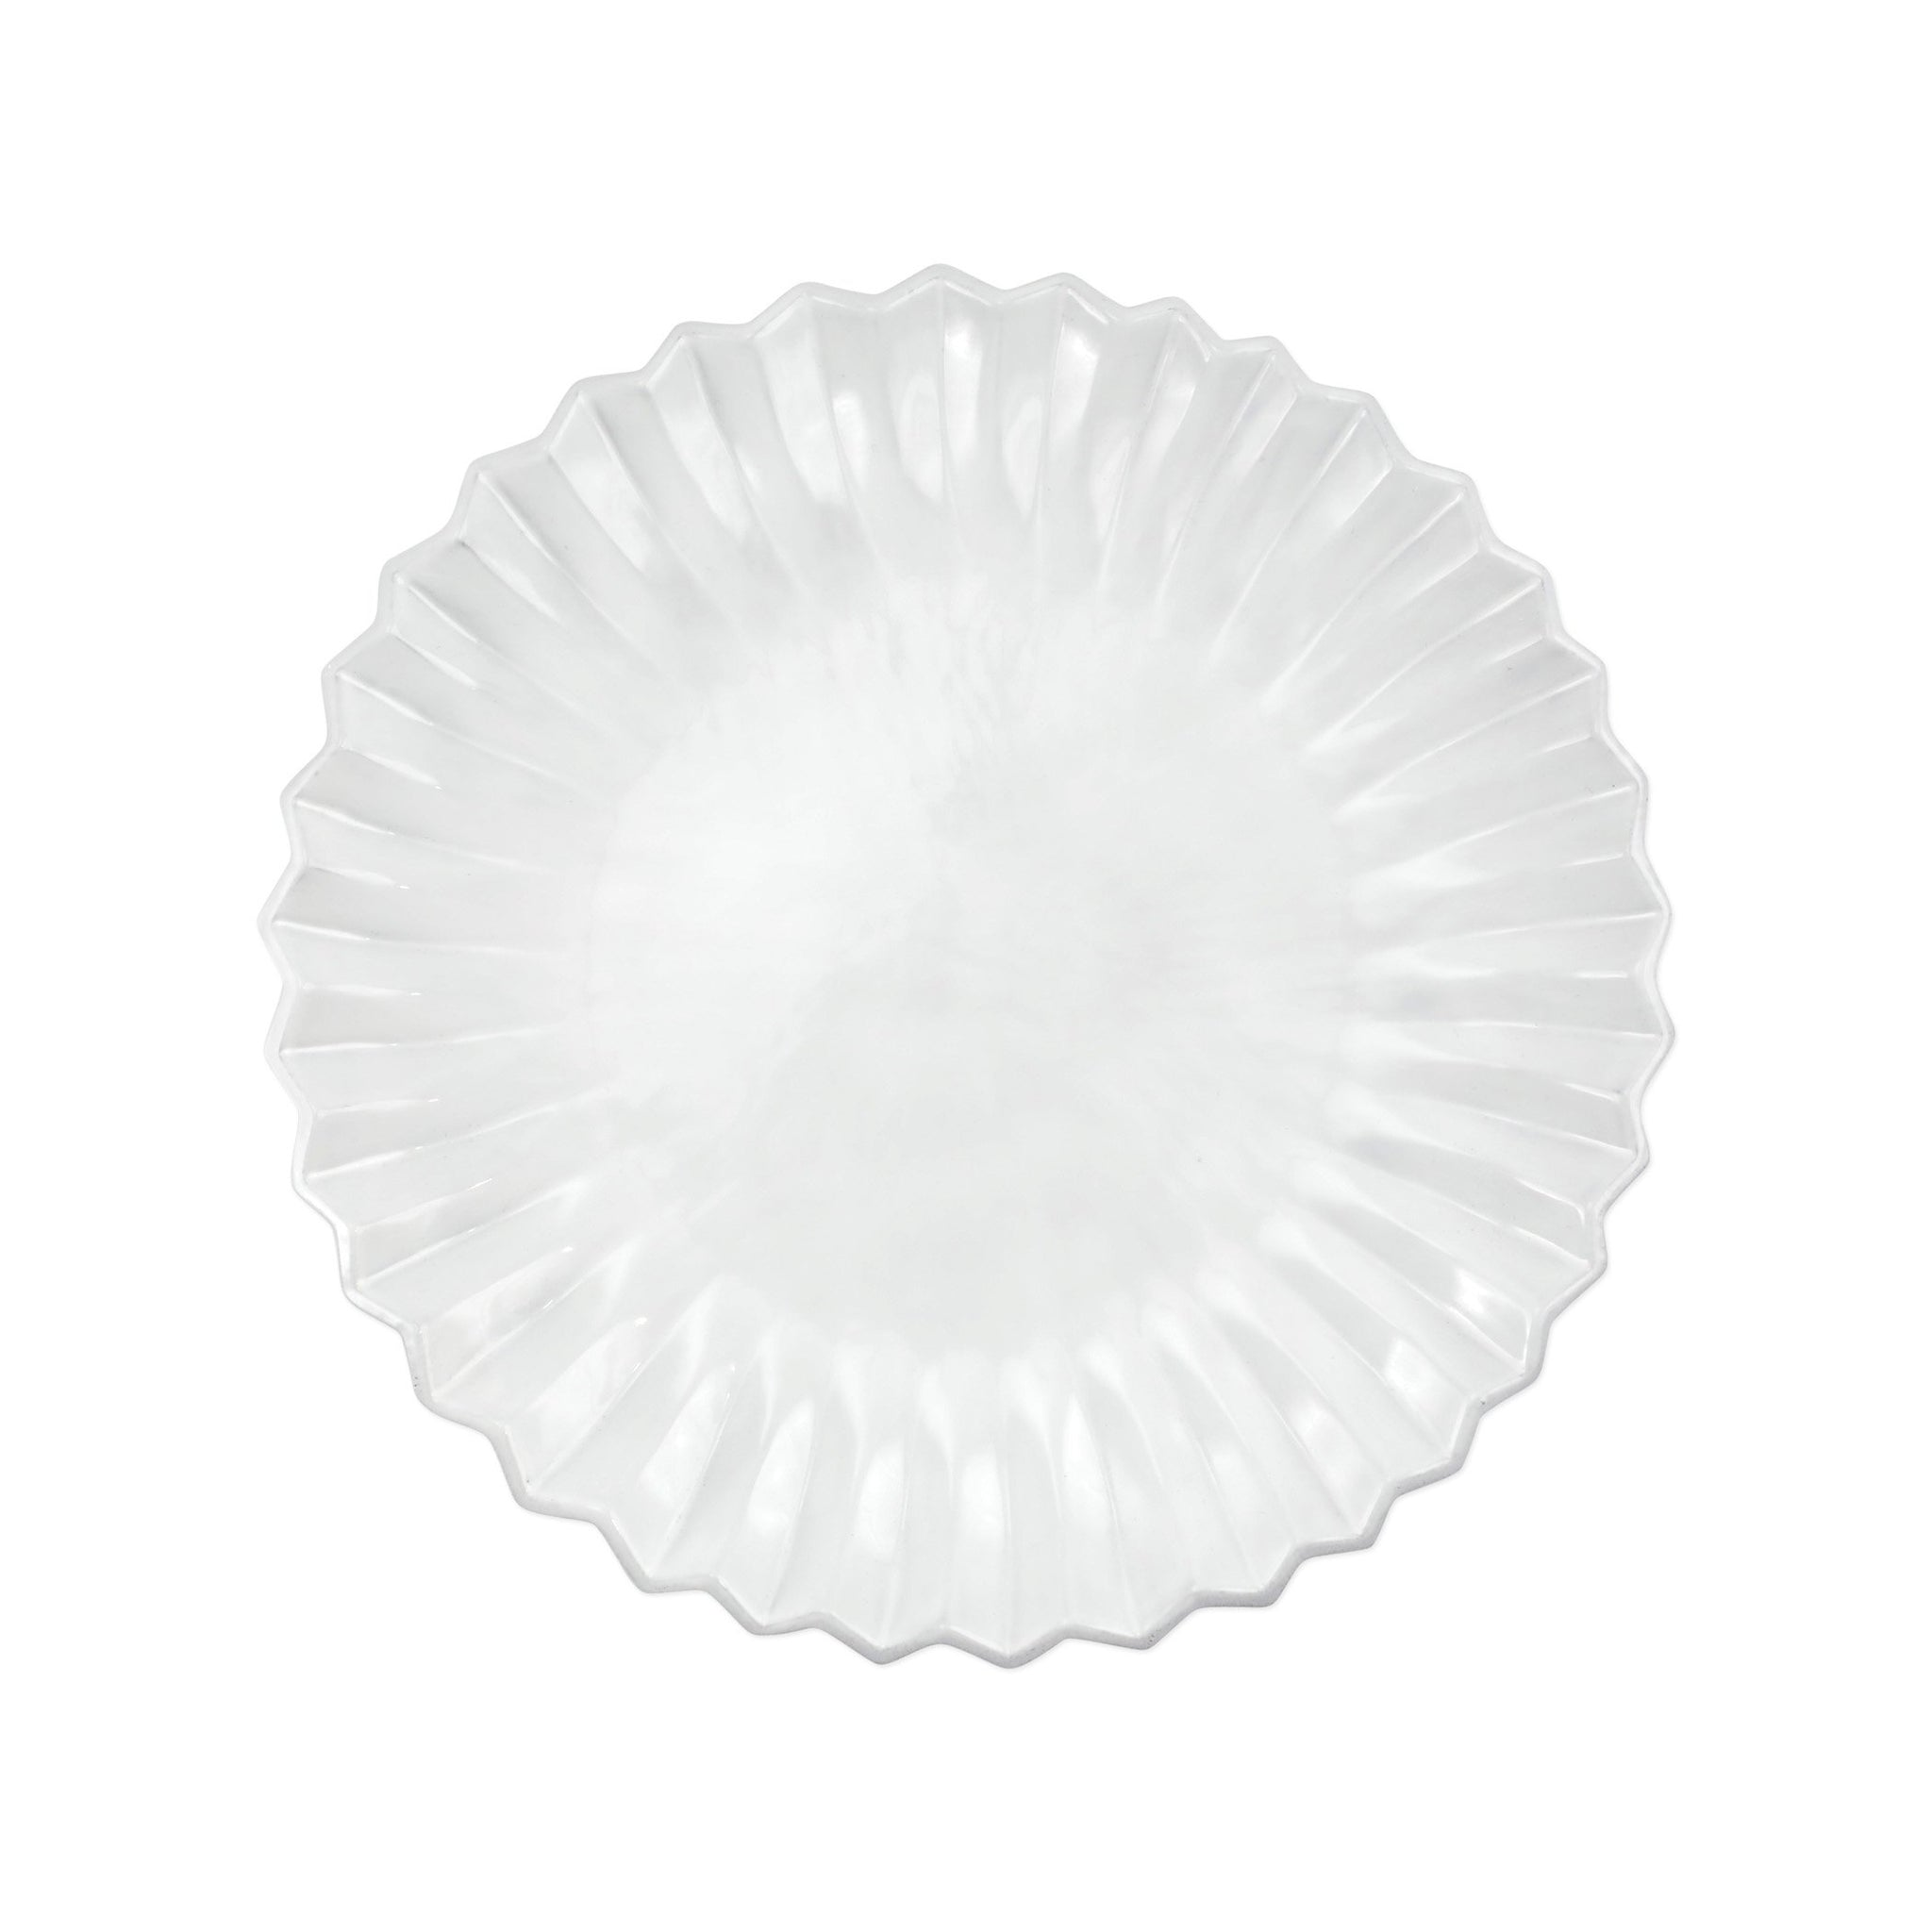 Incanto Pleated European Dinner Plate